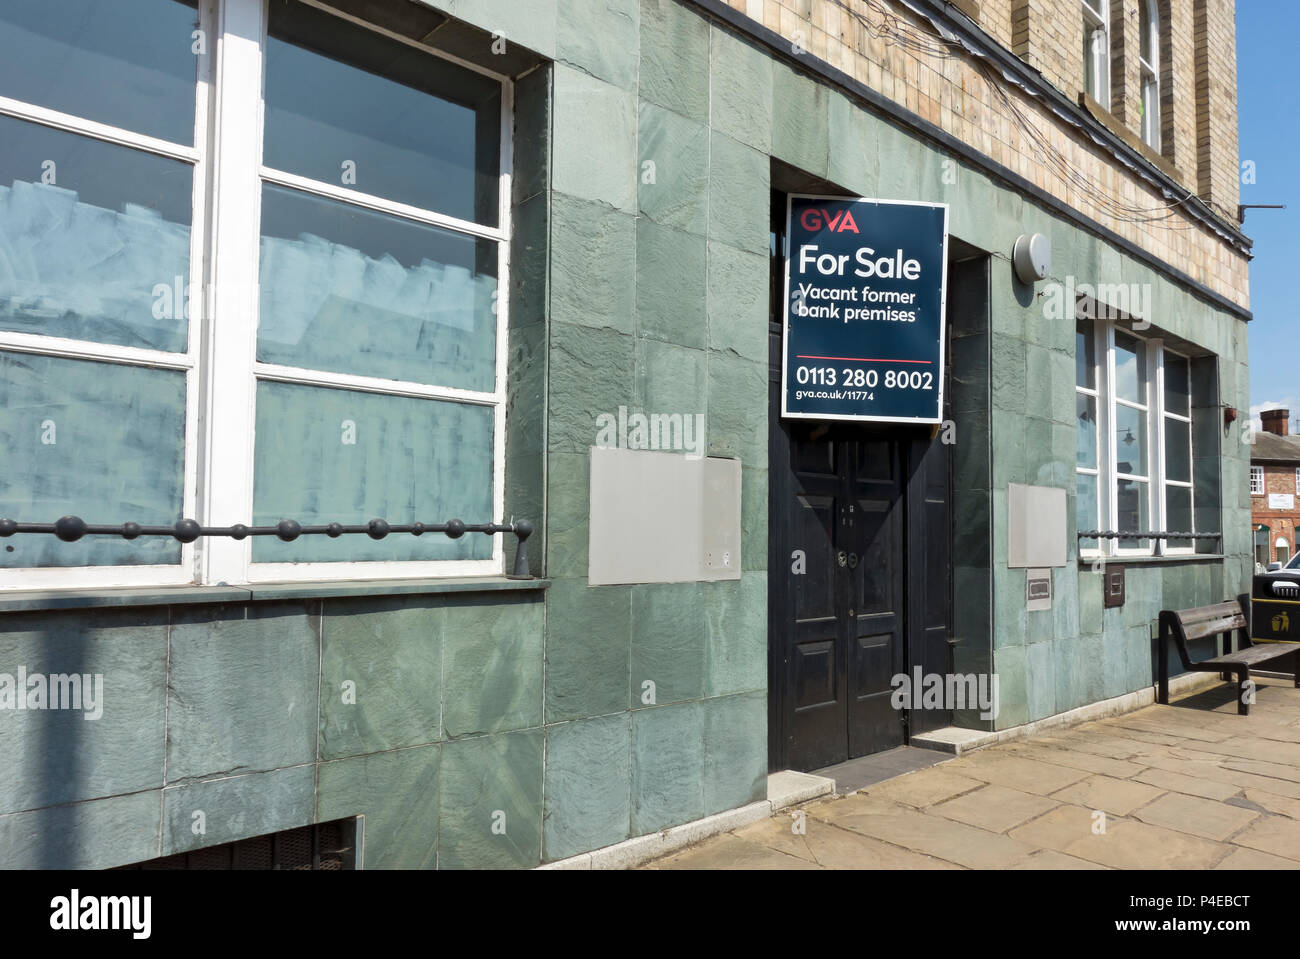 High Street Bank And For Sale High Resolution Stock Photography And Images Alamy